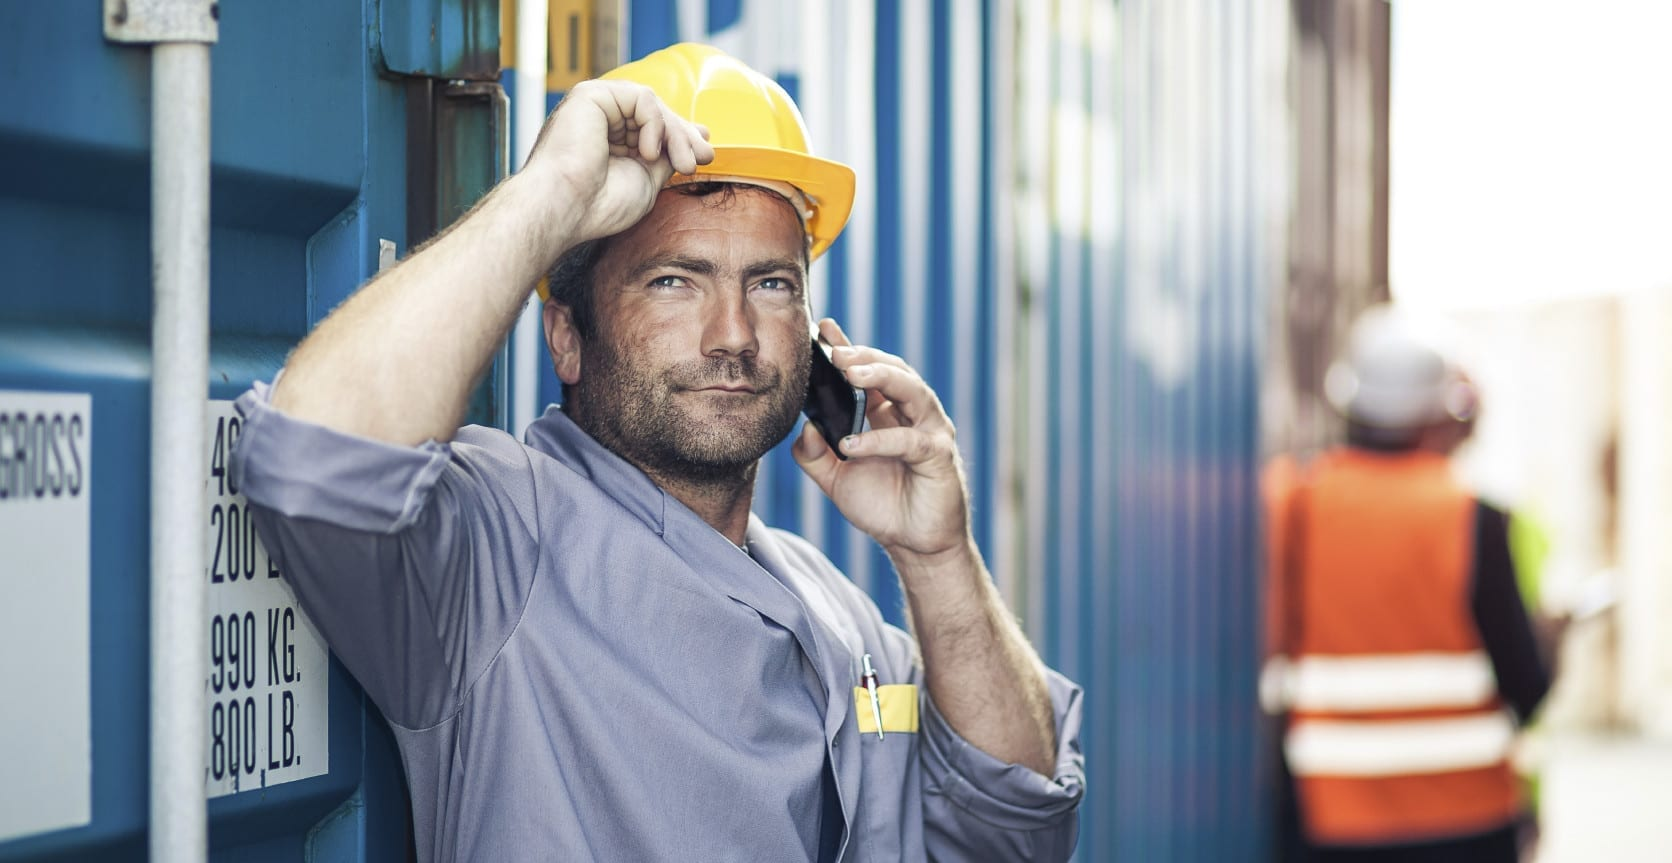 Construction Worker In Hard Hat Talking On Mobile Device Stock Photo